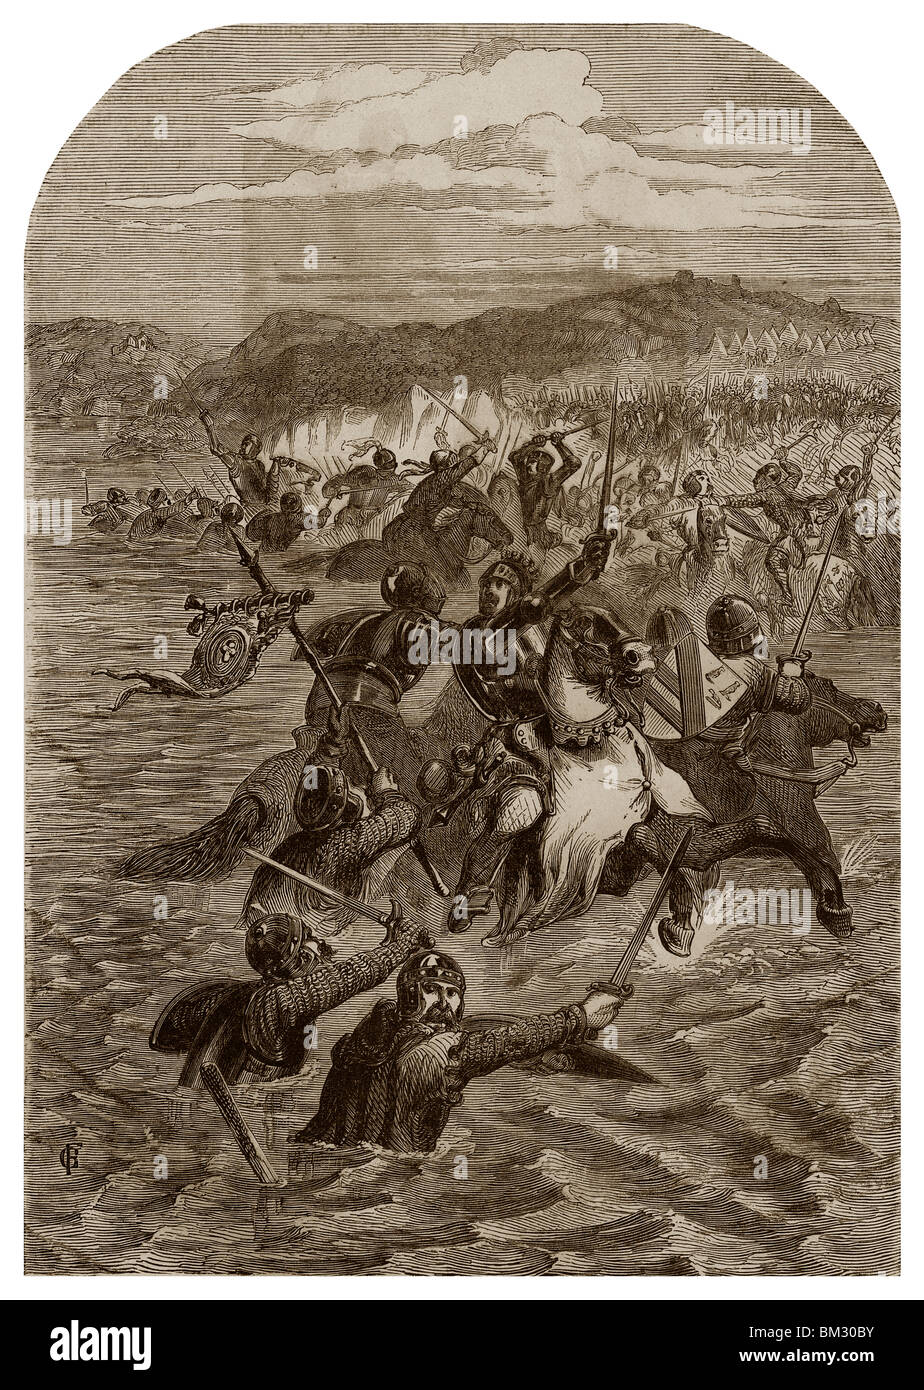 On 24th August 1346, Edward III of England forced the passage of Blanchetaque on Somme River. - Stock Image